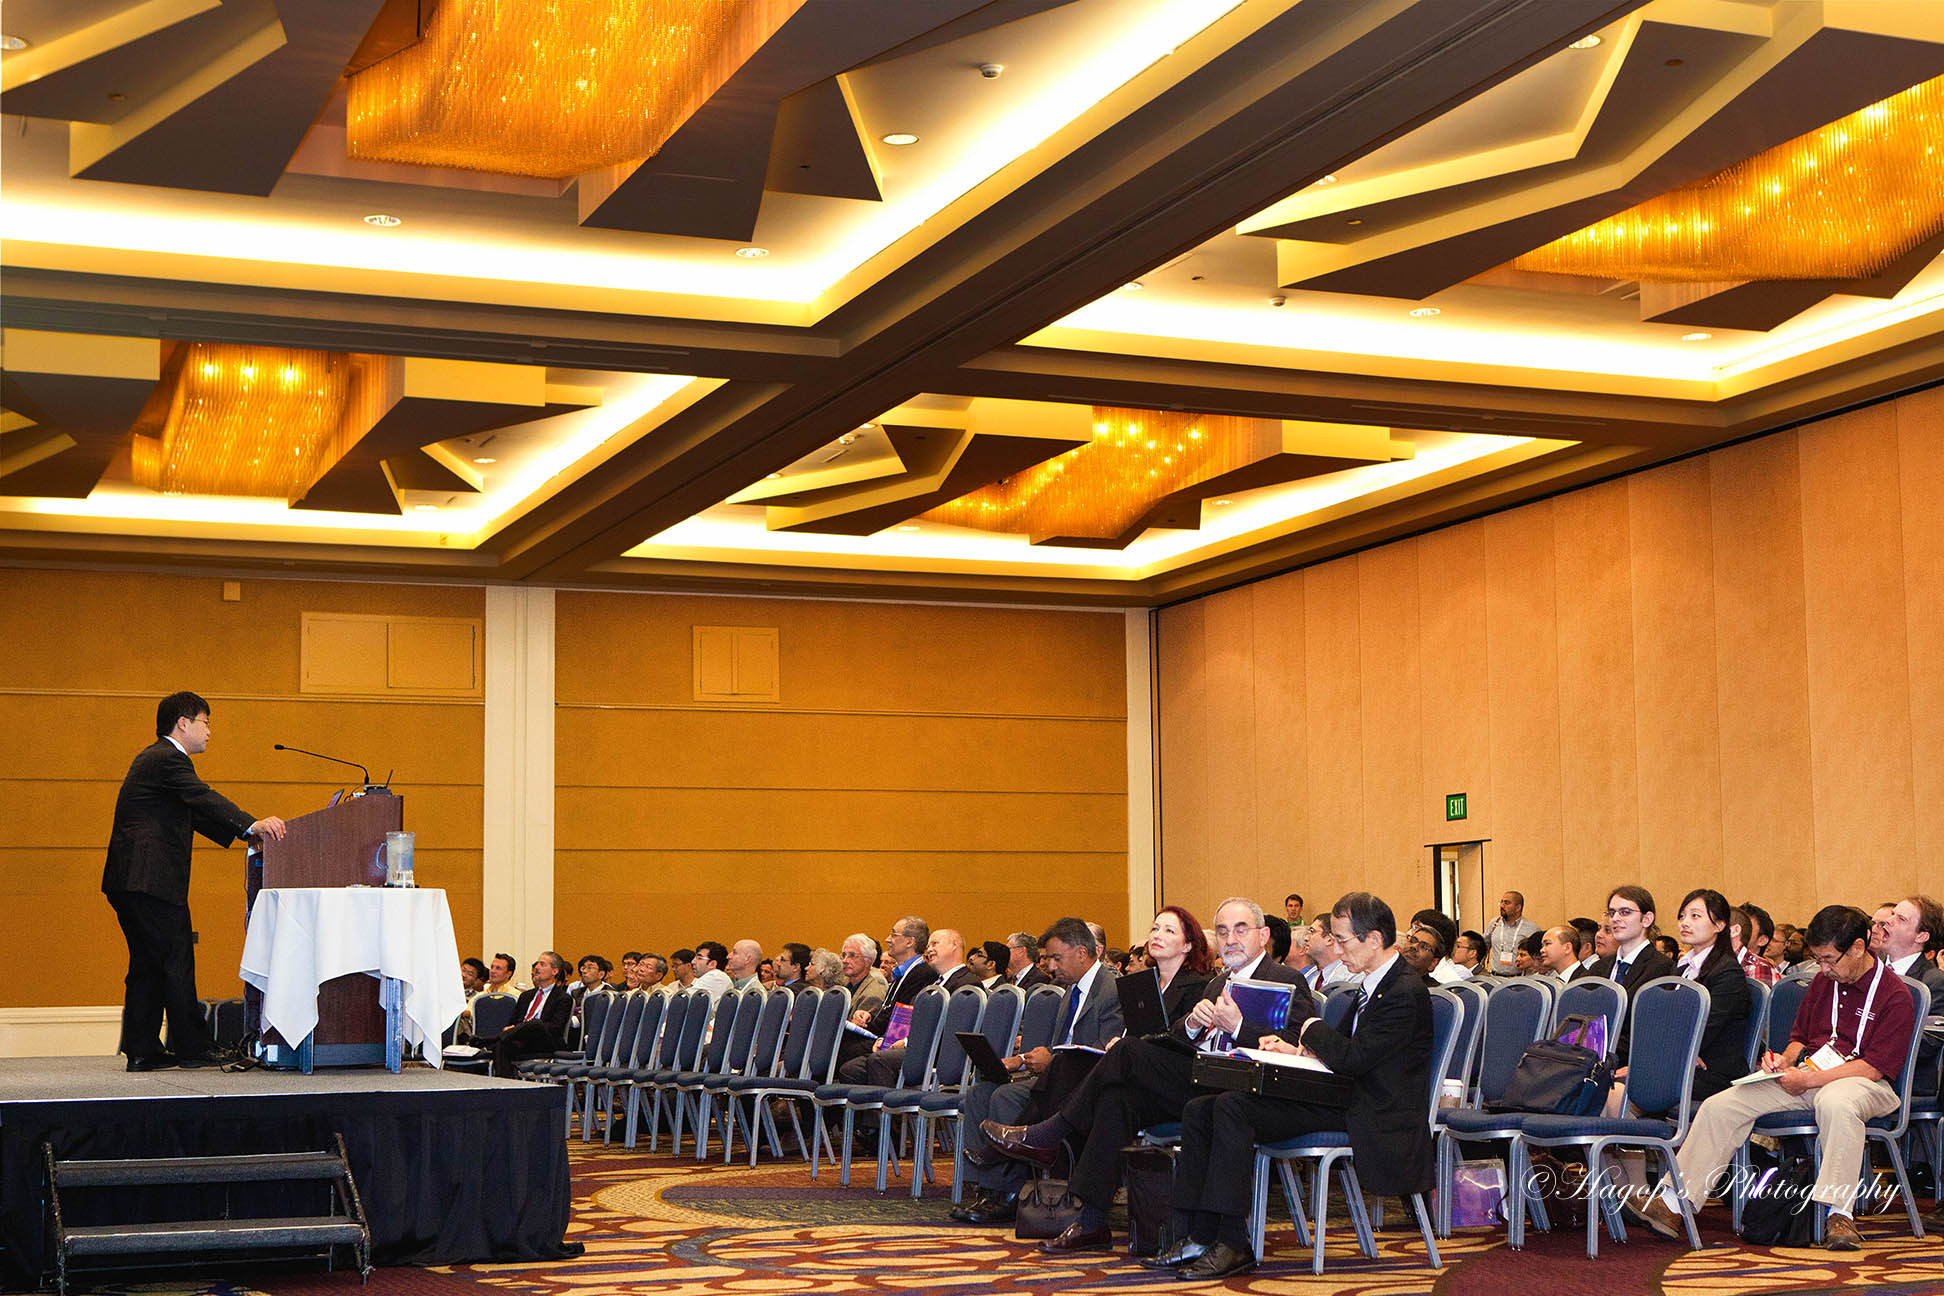 keynote speaker presenting to the attendees of the conference